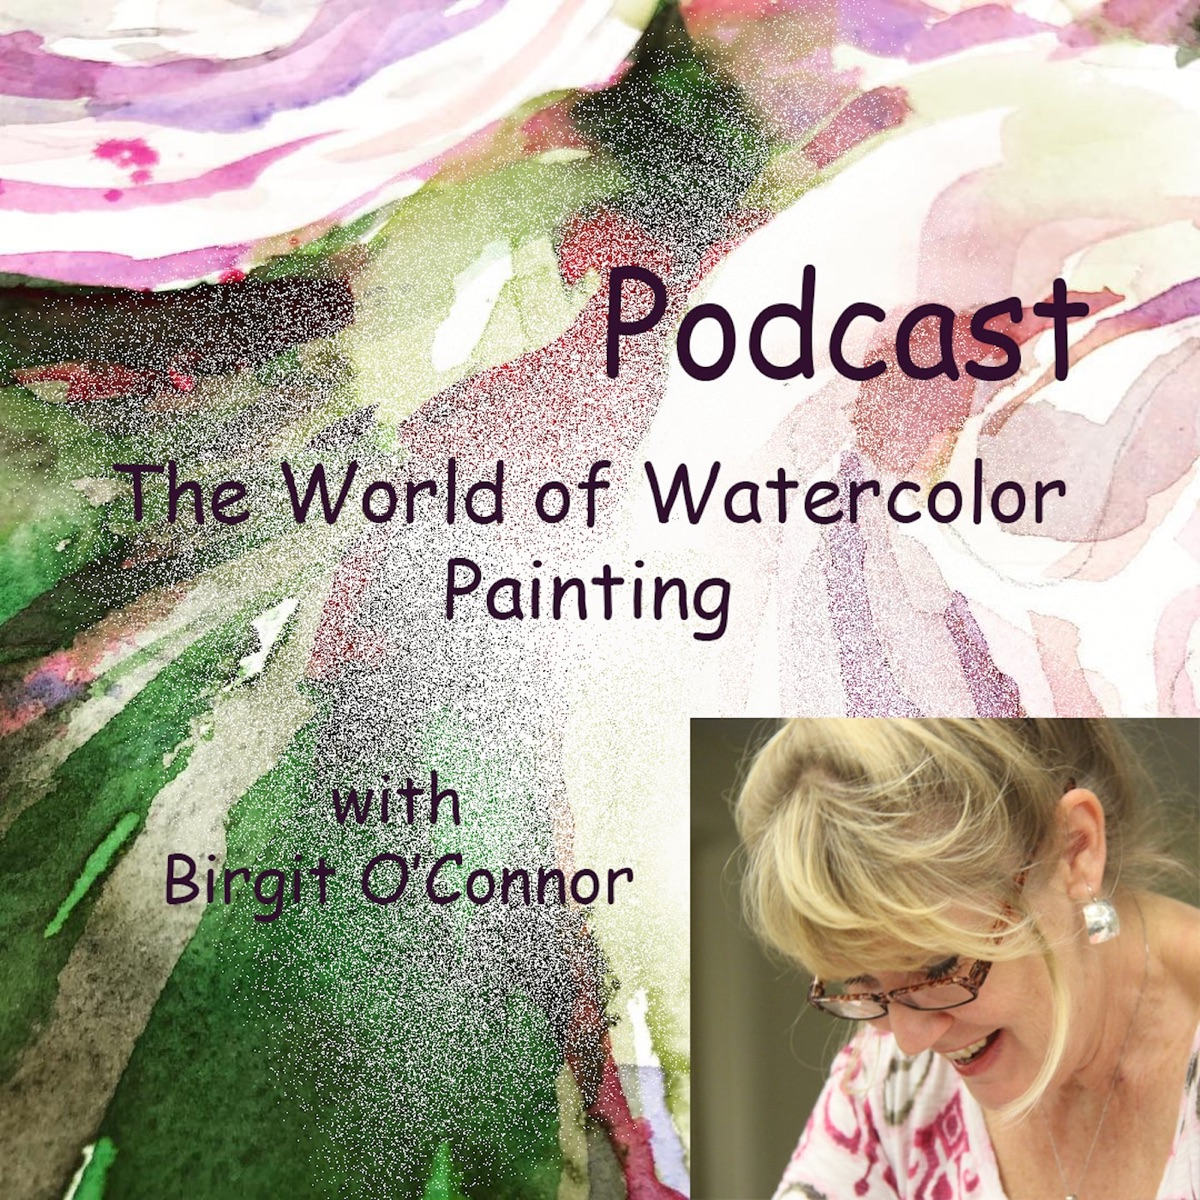 Birgit O'Connor and The World of Watercolor Painting